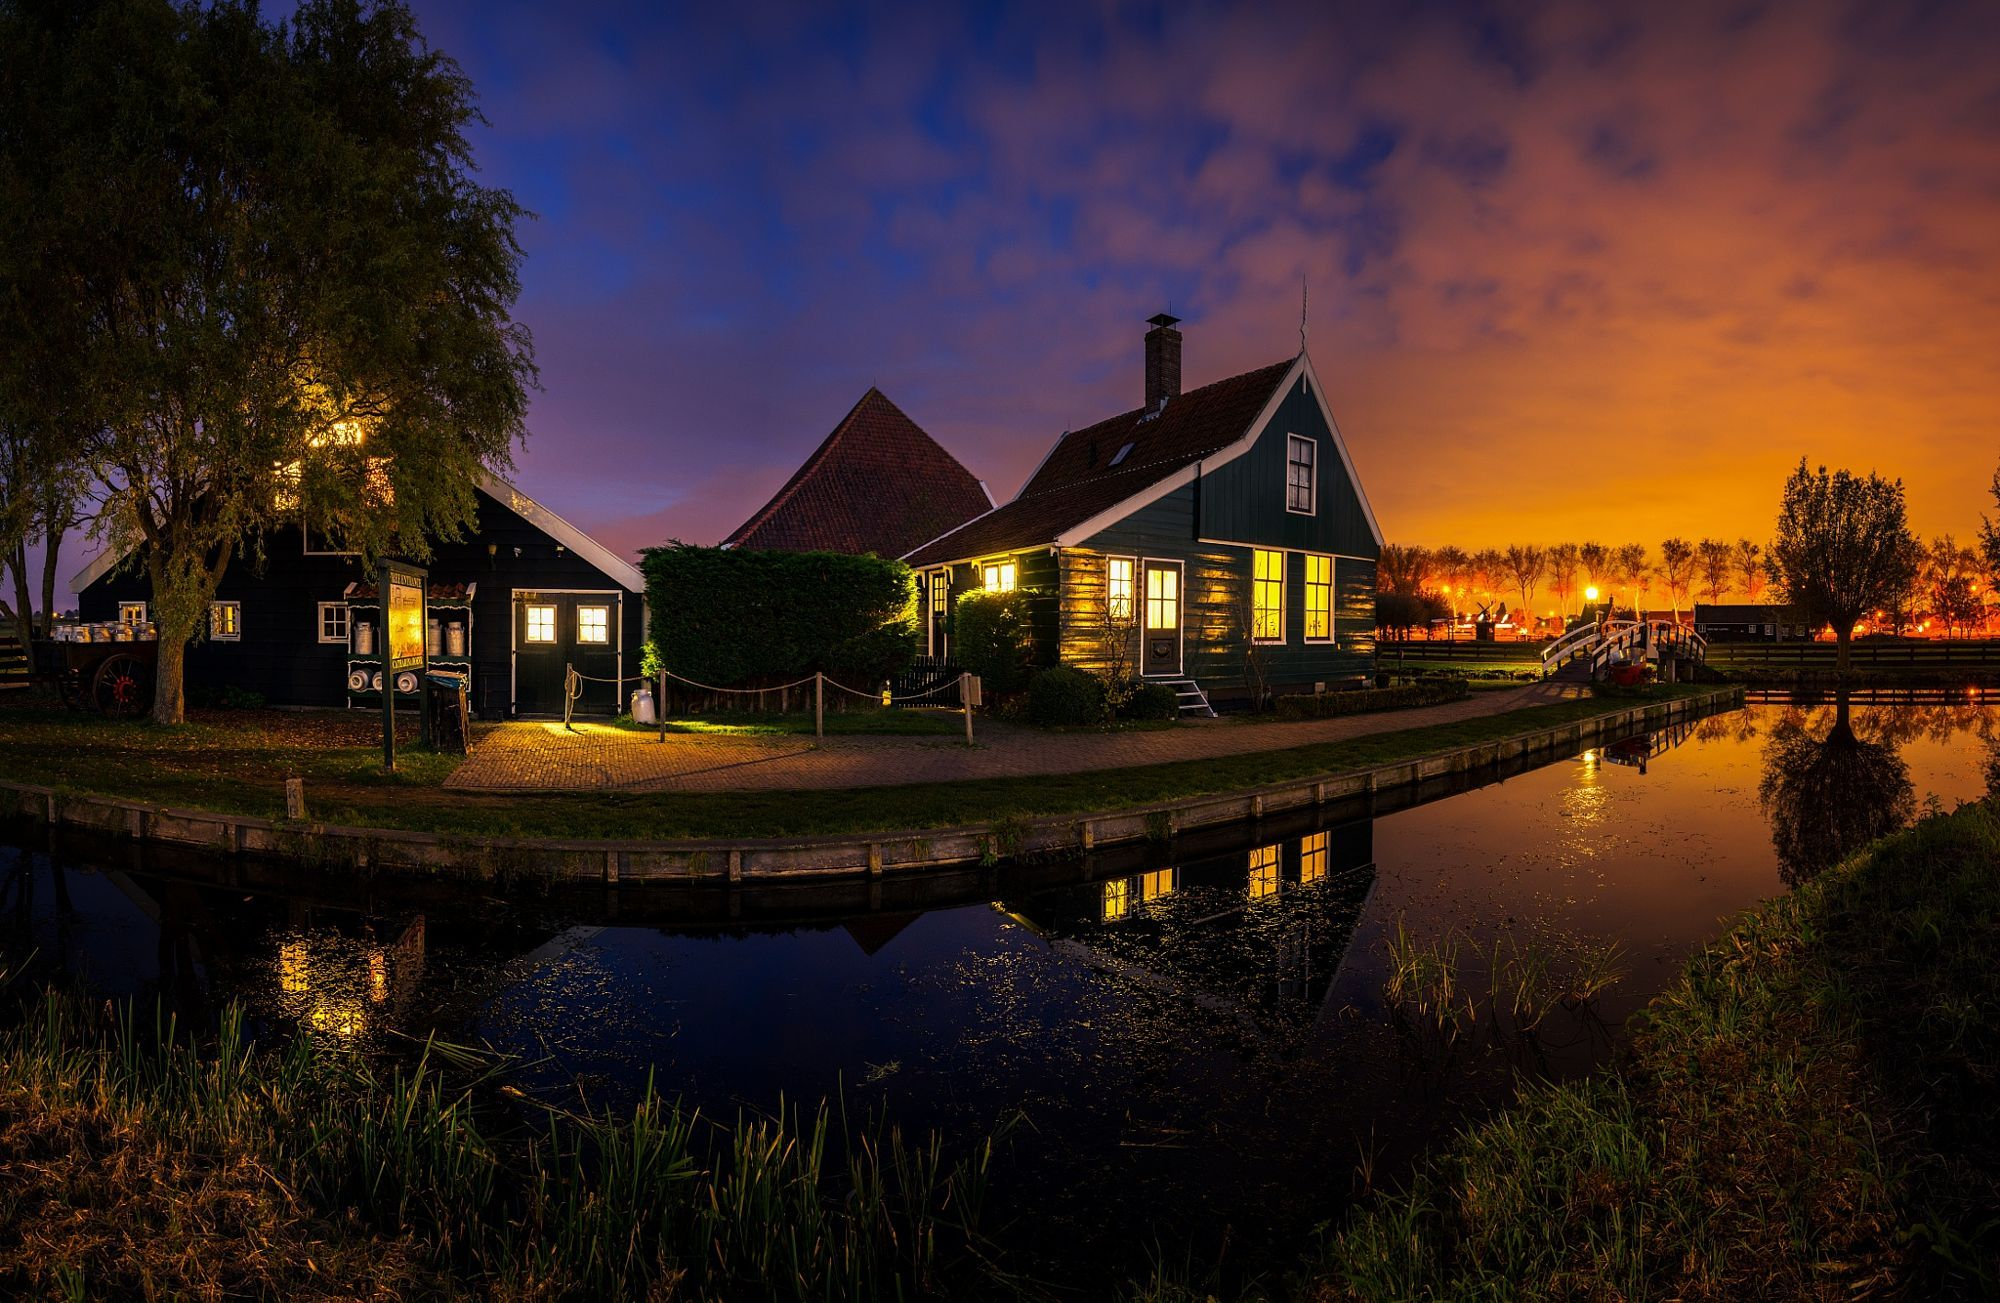 Zaanse Schans Holland  City and architecture photo by remoscarfo http://bit.ly/2cHeOTz